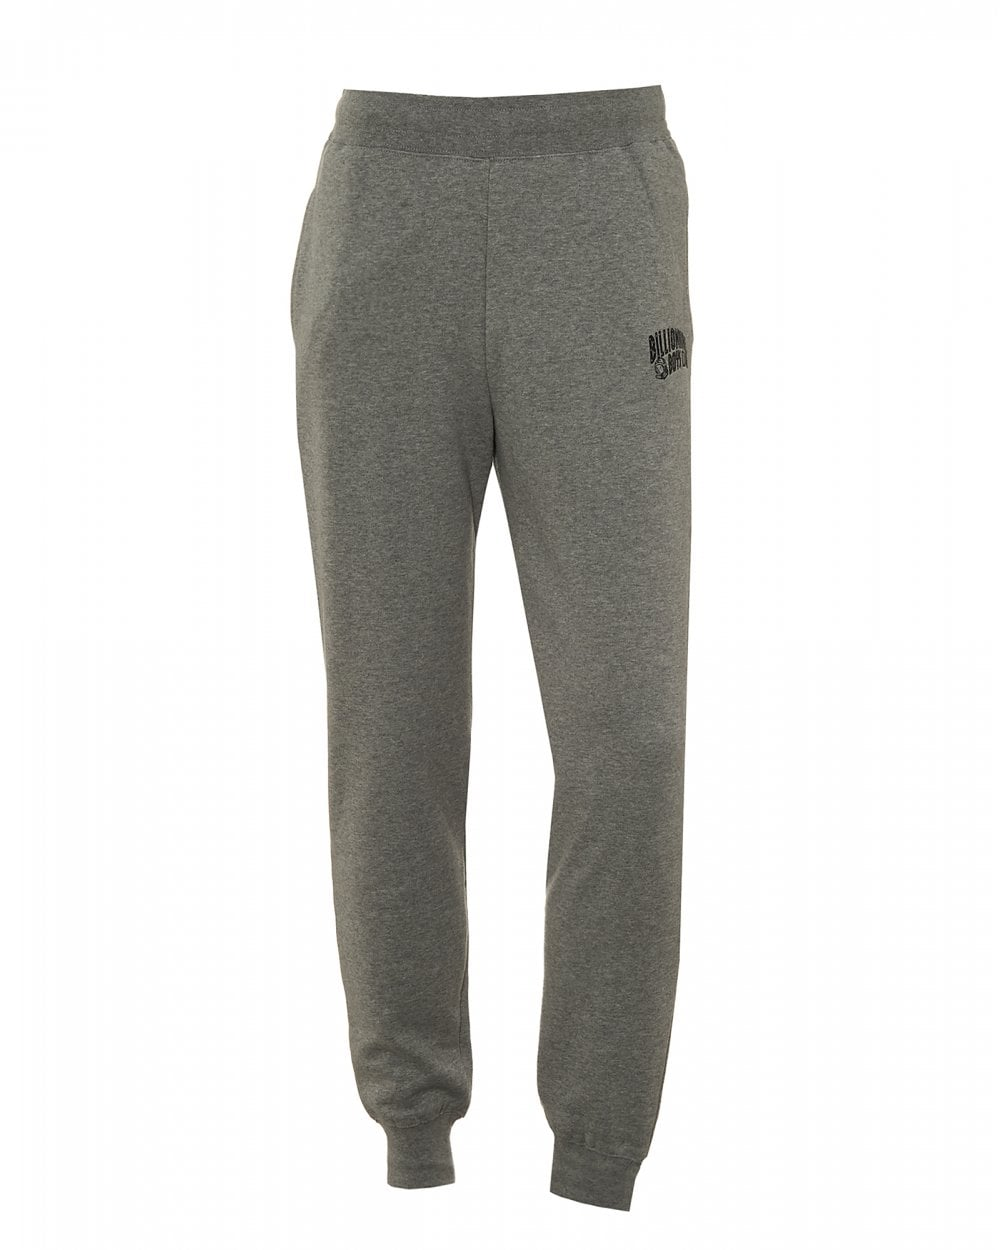 detailed look cheapest uk store Mens Arch Logo Joggers, Basic Grey Sweatpants